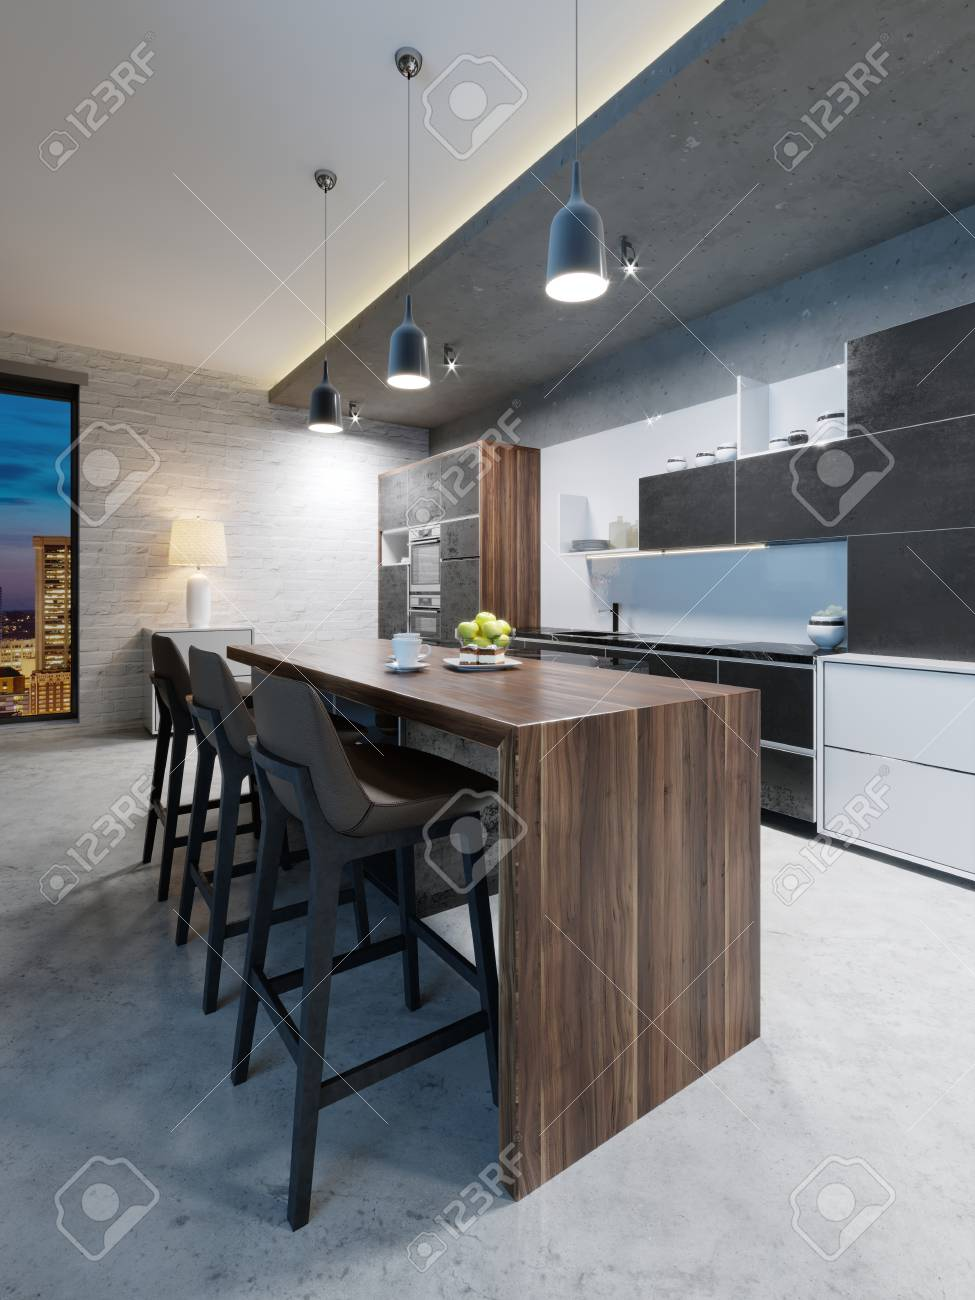 Bar counter with chairs and a kitchen island in a modern kitchen,..